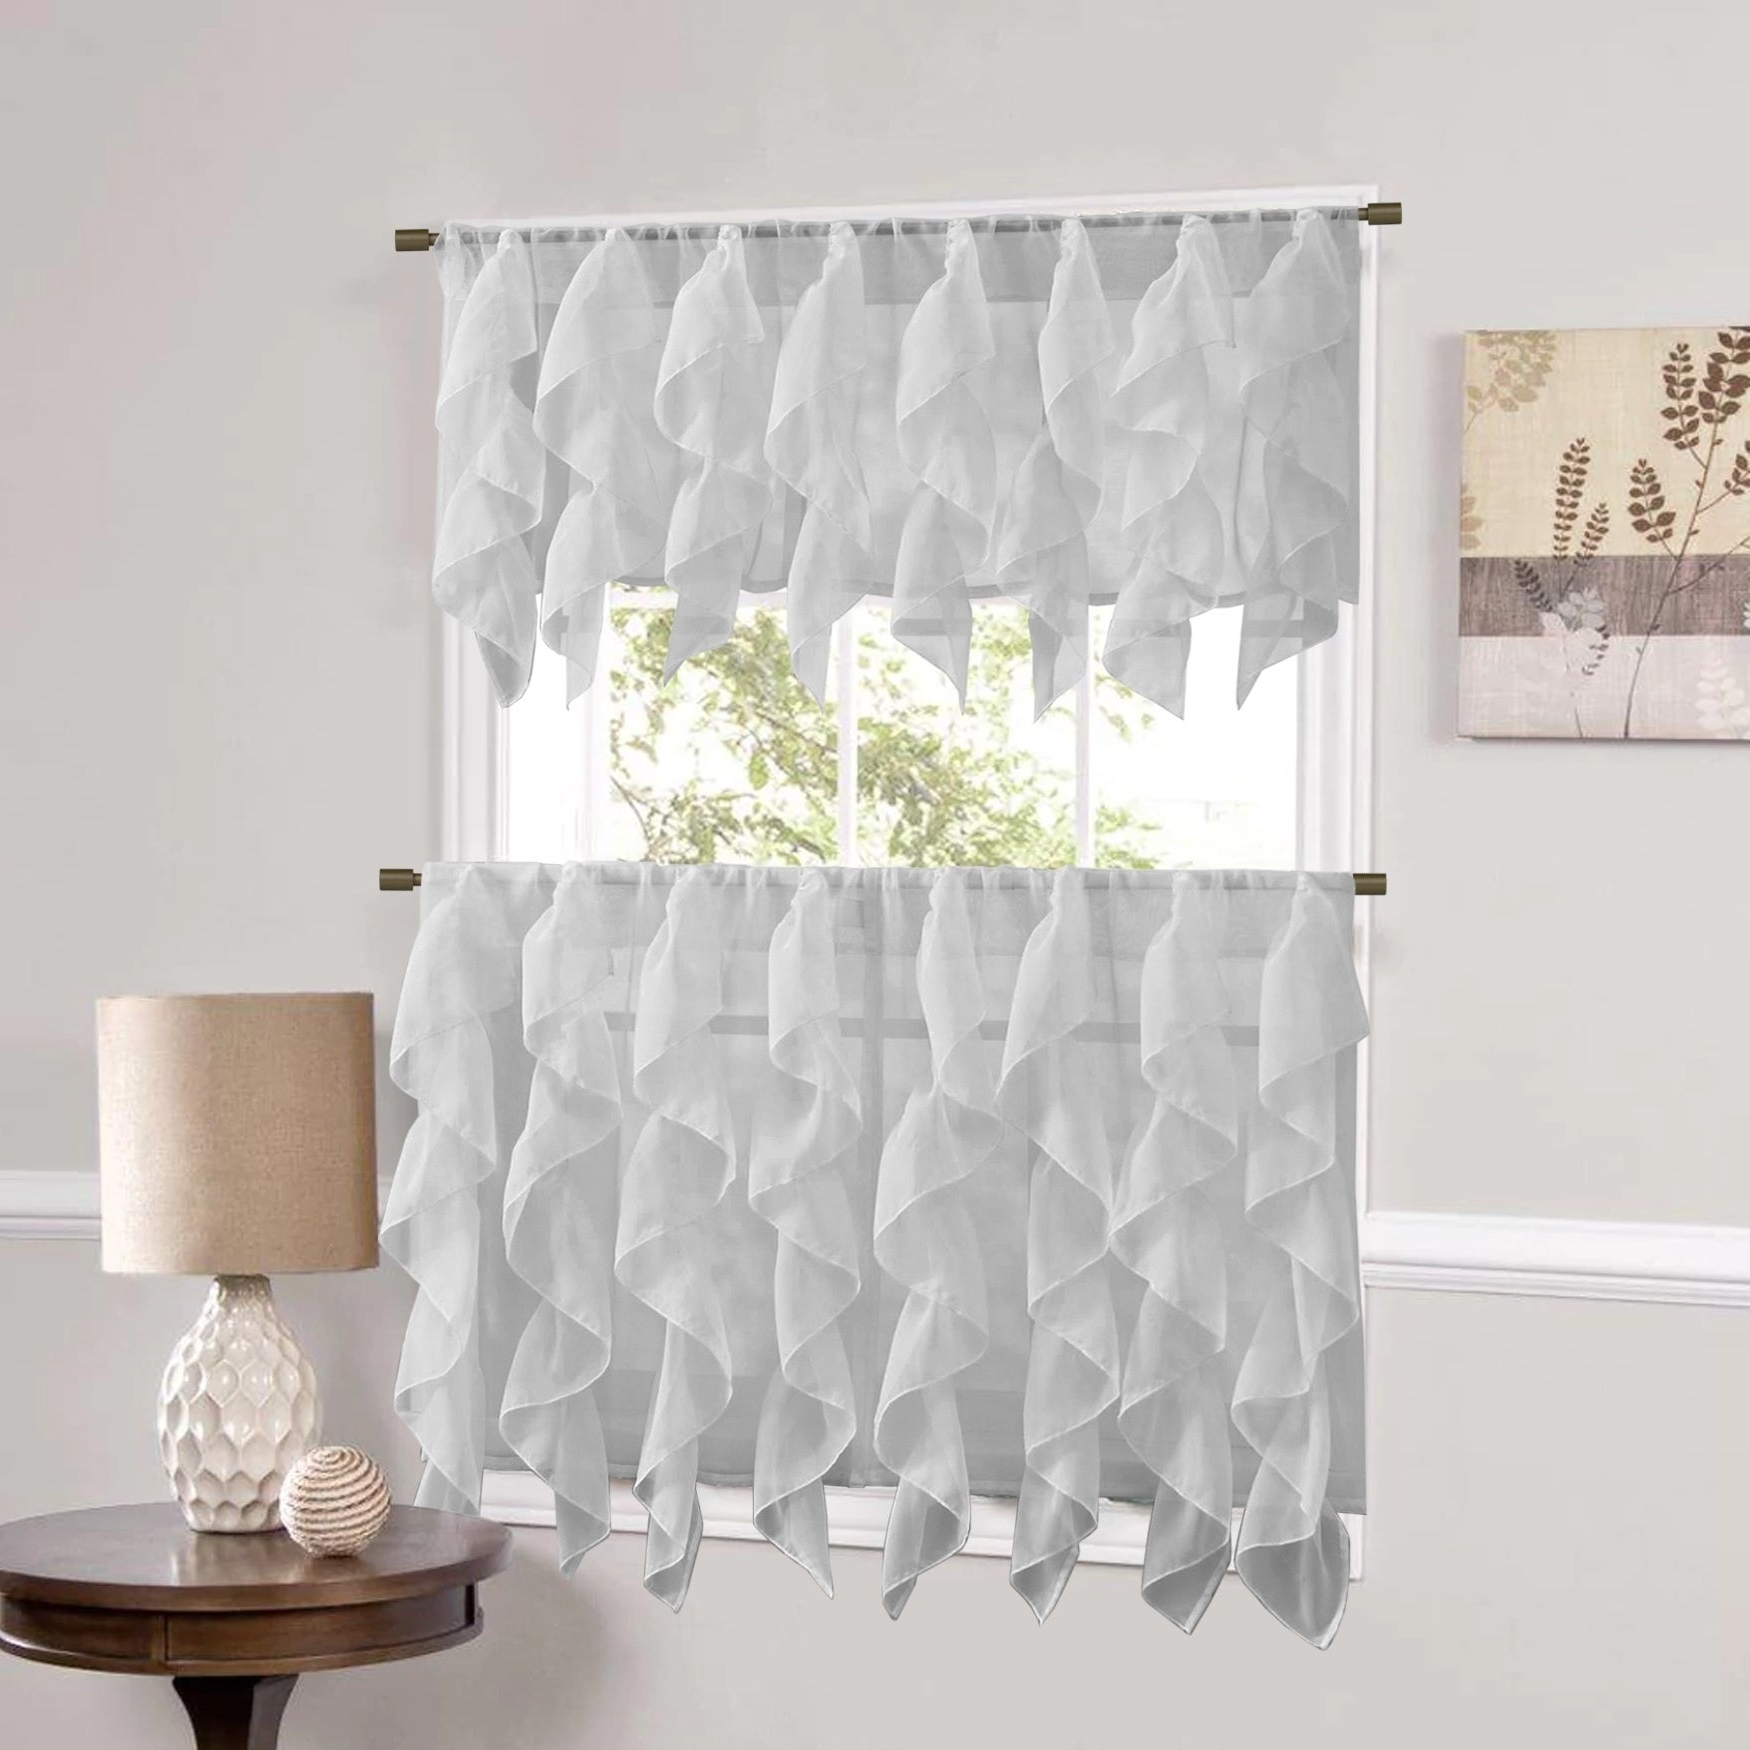 Featured Photo of Vertical Ruffled Waterfall Valances And Curtain Tiers